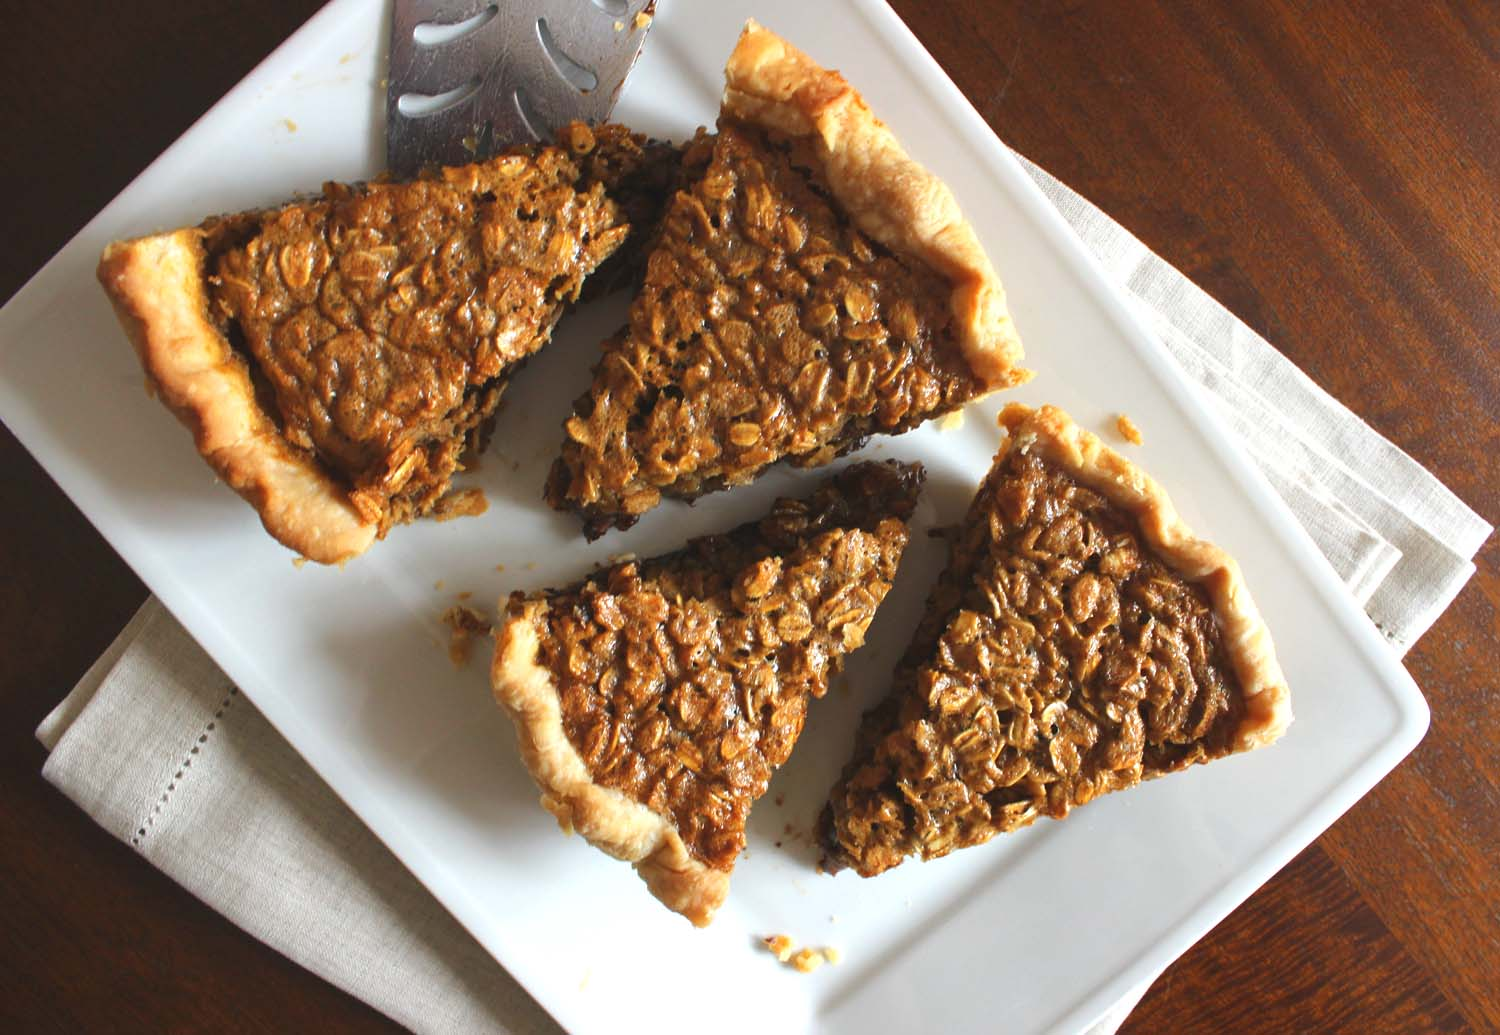 Black Bottom Oatmeal Pie   | Image:   Laura Messersmith